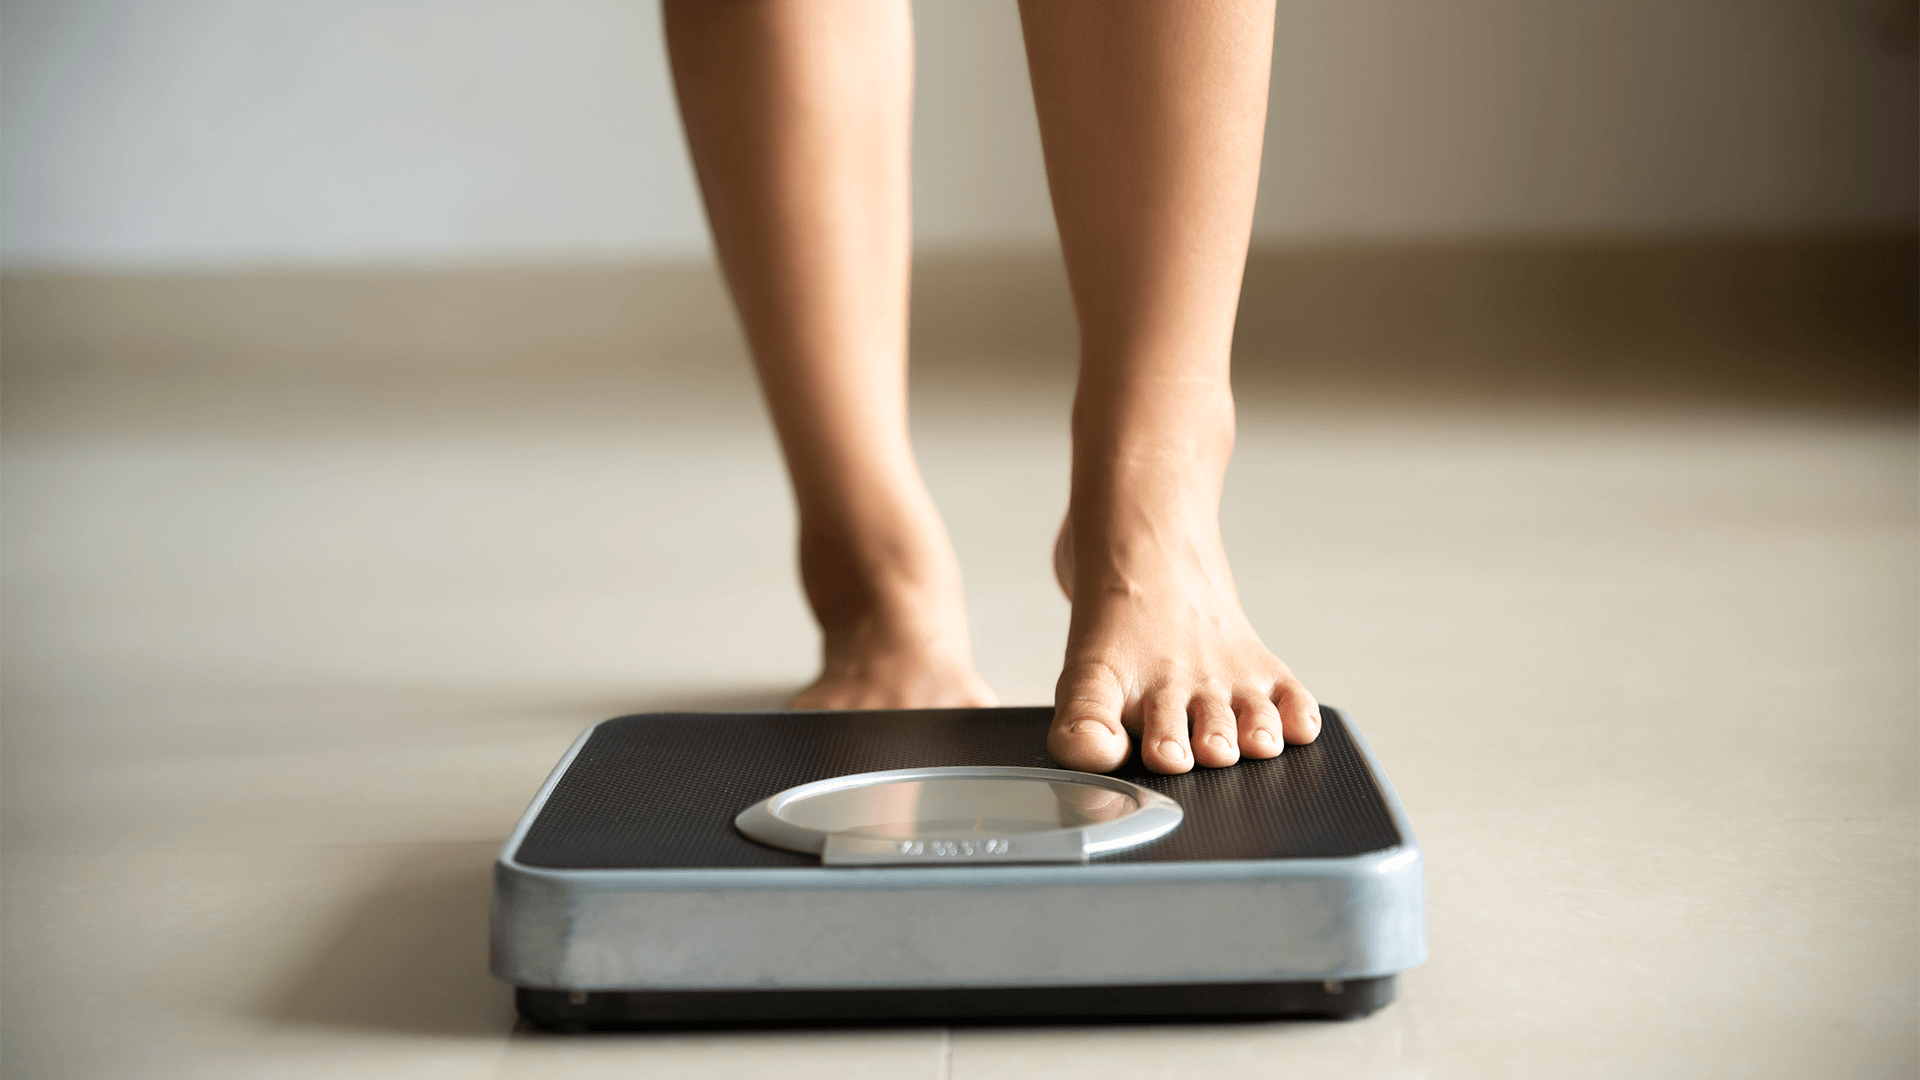 How To lose weight by eating more